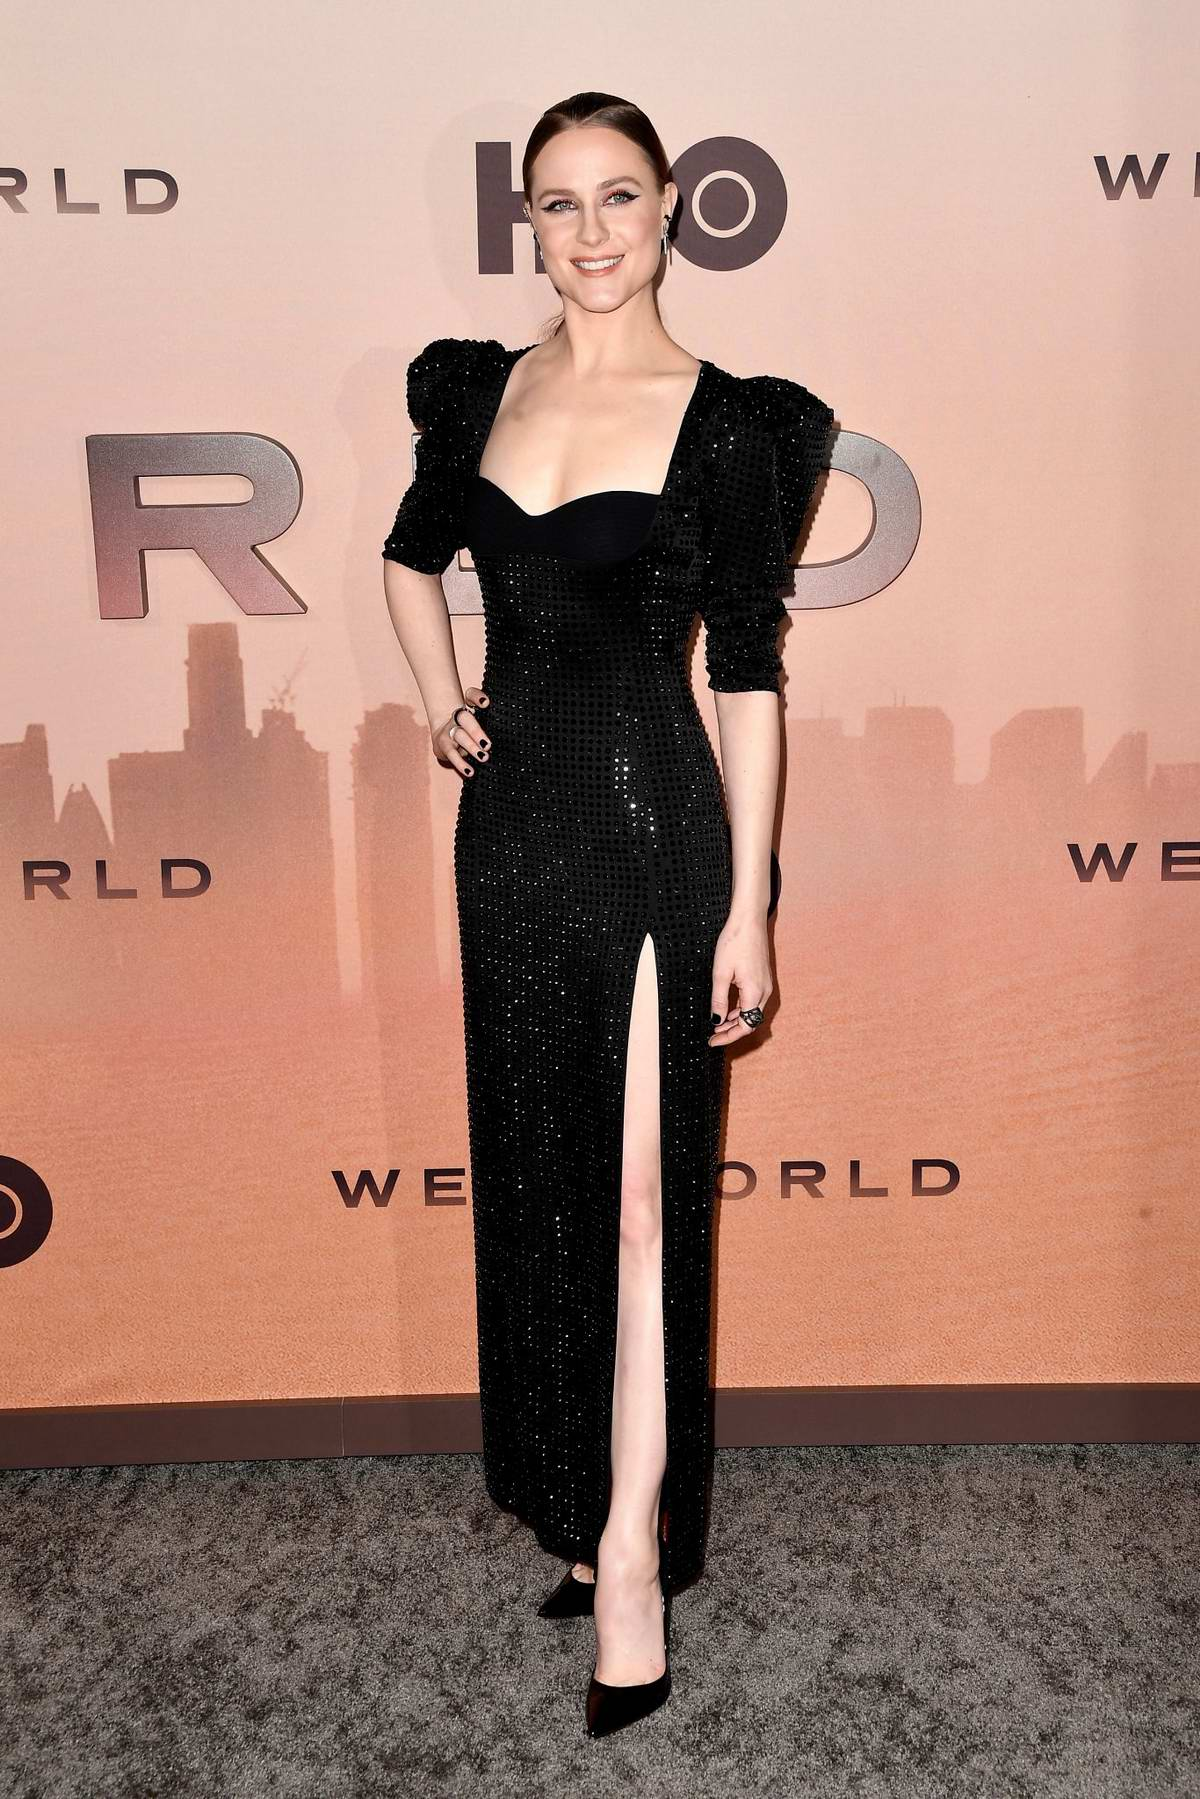 Evan Rachel Wood attends the Premiere of 'Westworld', Season 3 in Hollywood, California